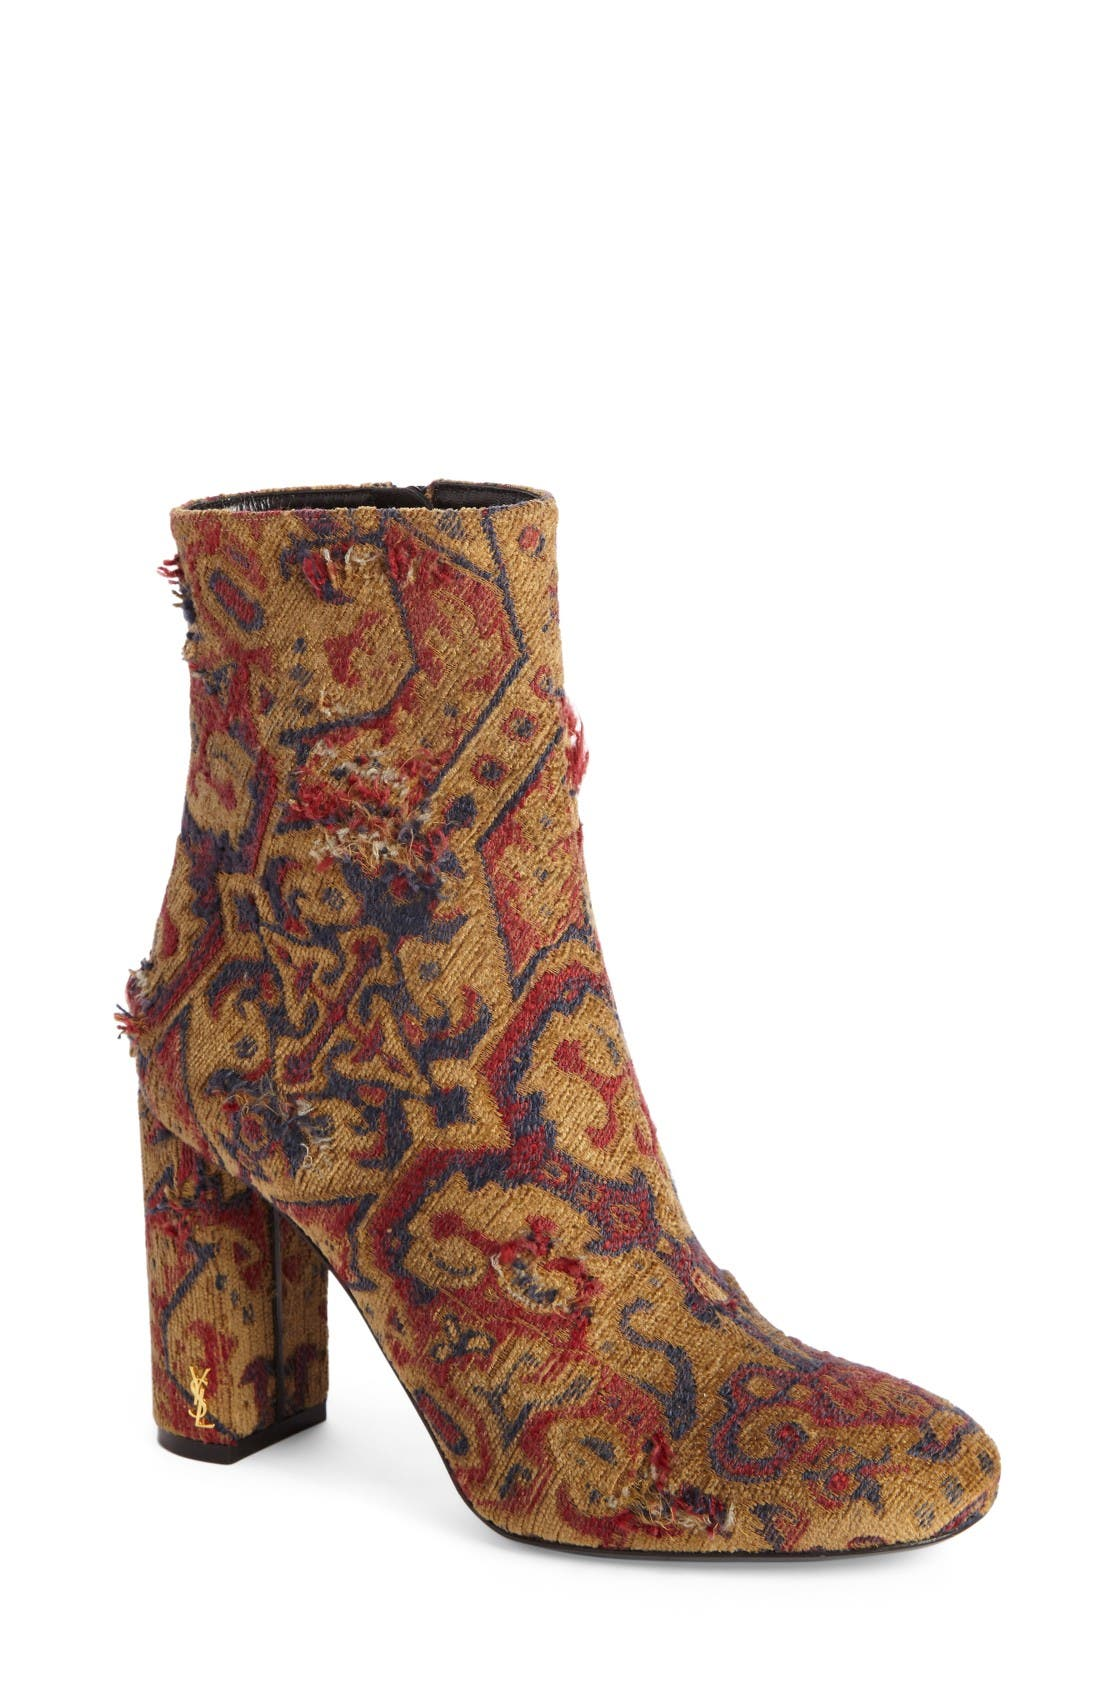 SAINT LAURENT Loulou - Tapestry Bootie